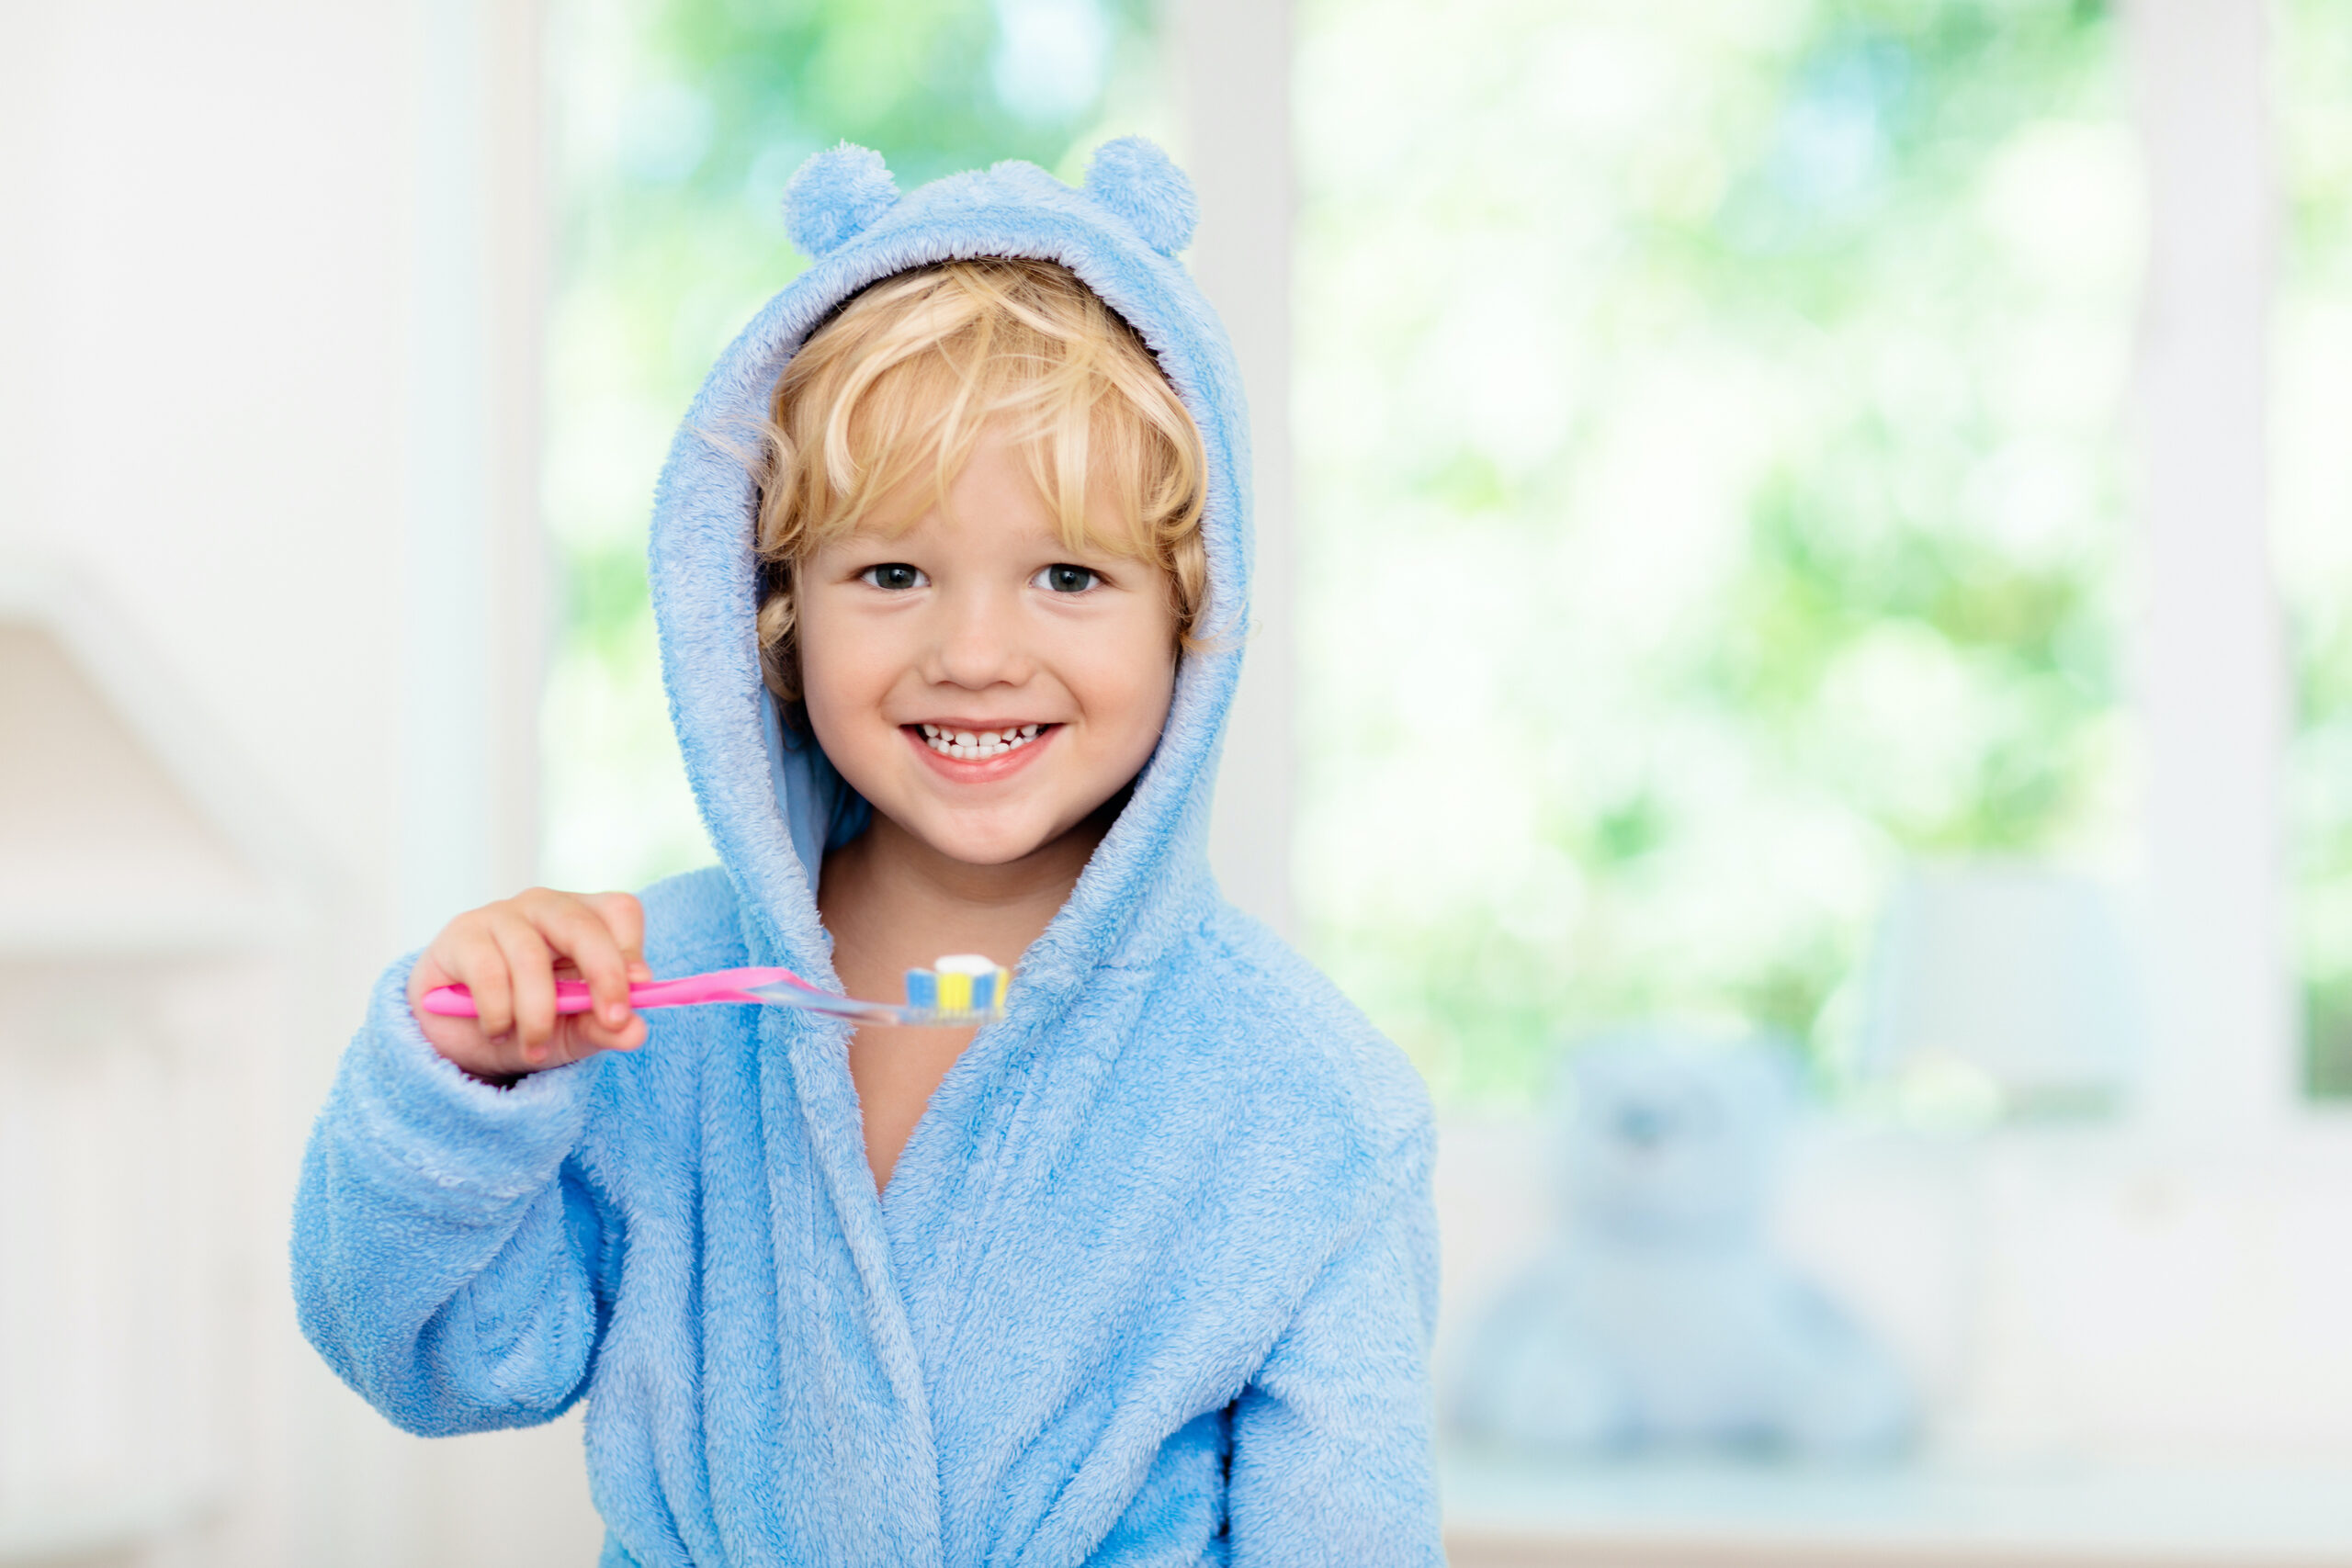 Child brushing teeth. Kids tooth brush and paste. Little baby boy in blue bath robe or towel brushing his teeth in white bathroom with window on sunny morning. Dental hygiene and heath for children. fluoride services